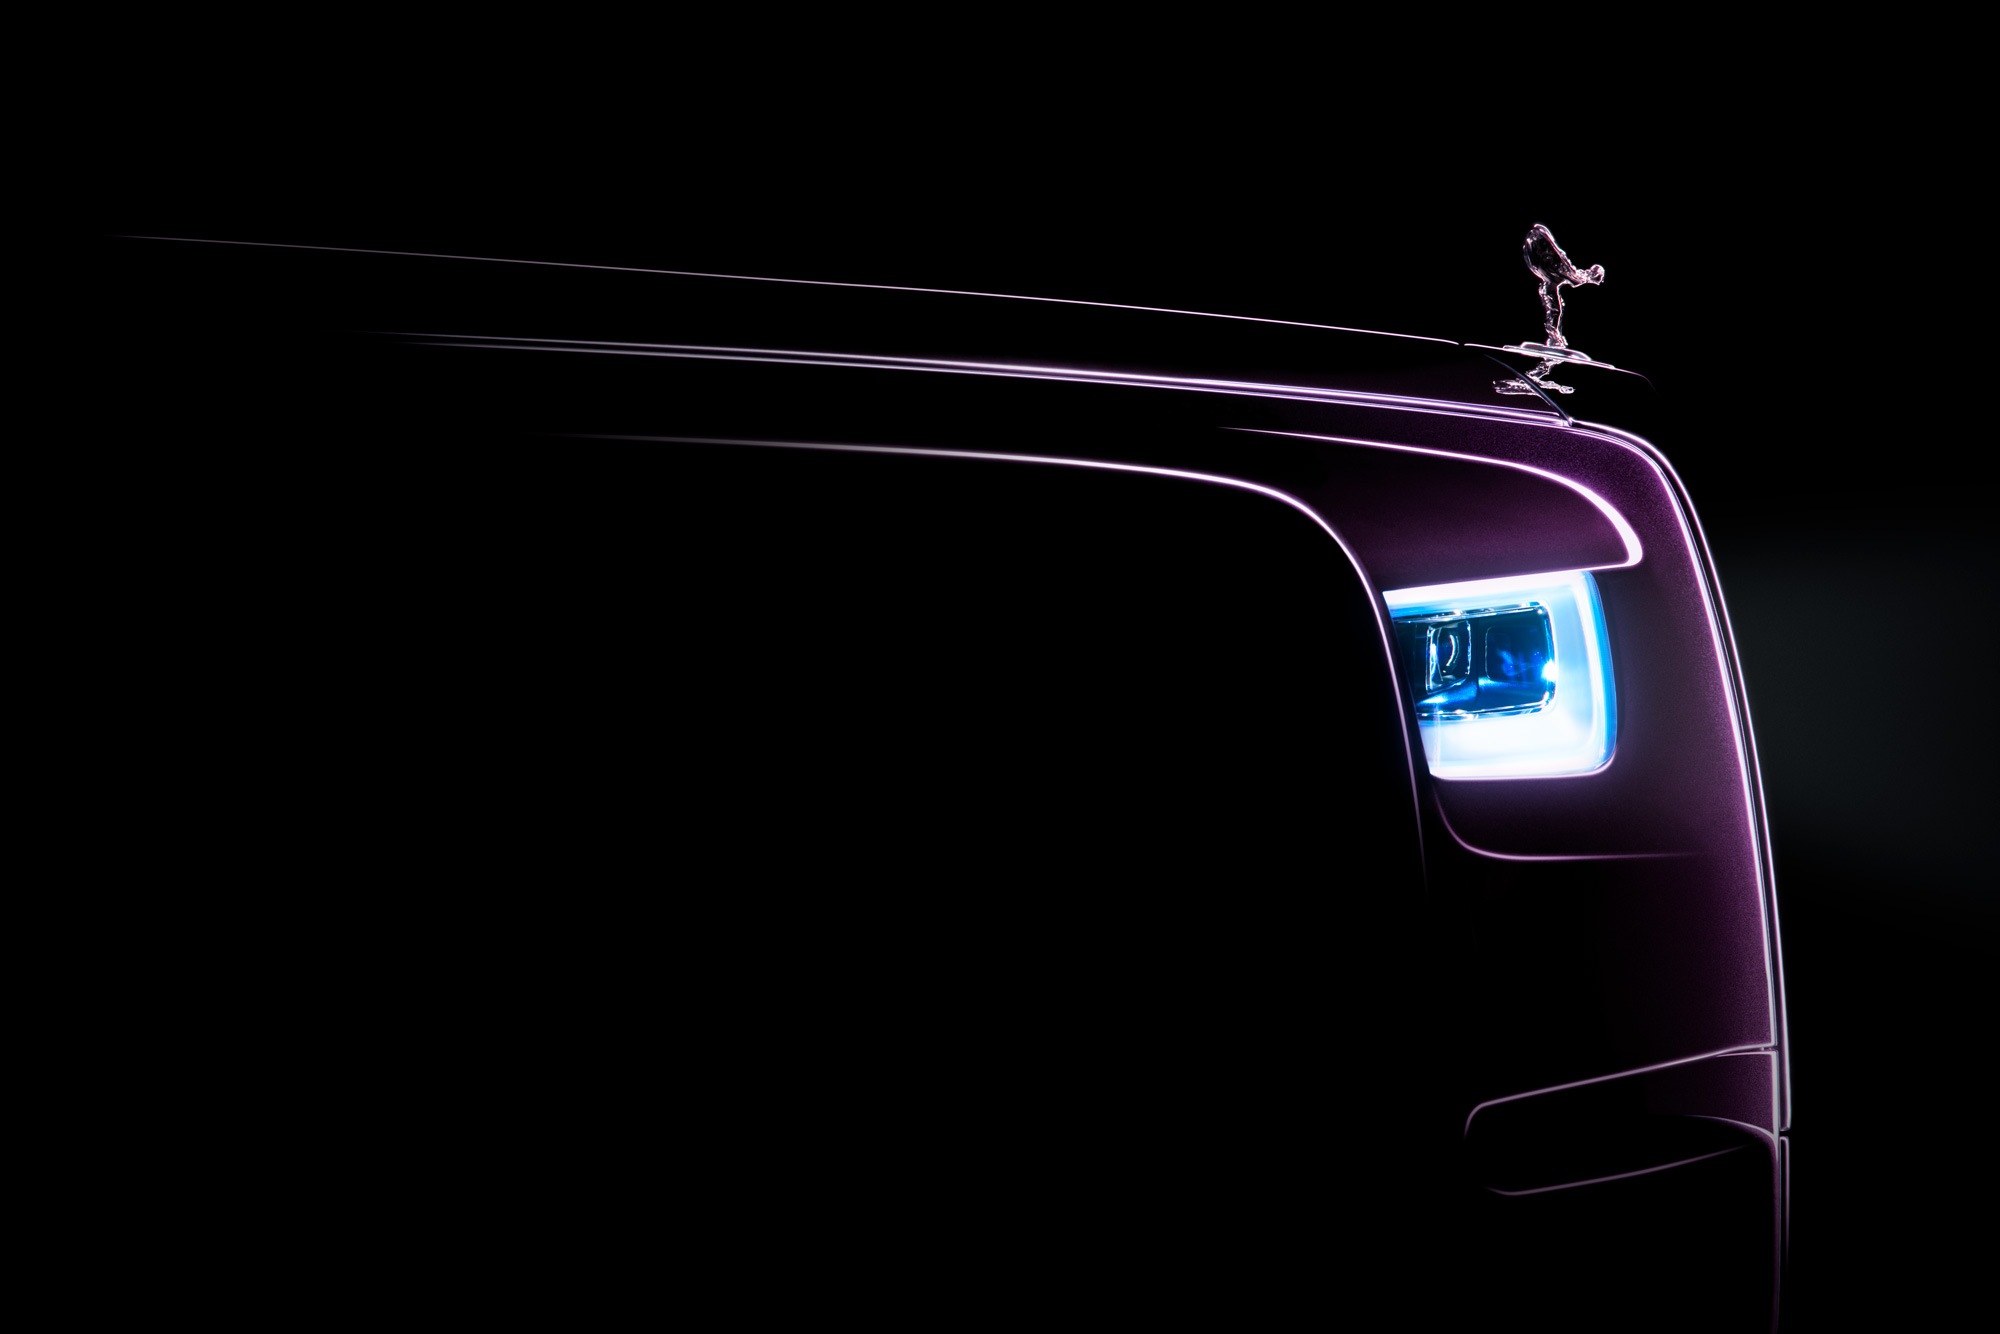 Rolls-Royce teases the next-generation Phantom VIII ahead of official launch